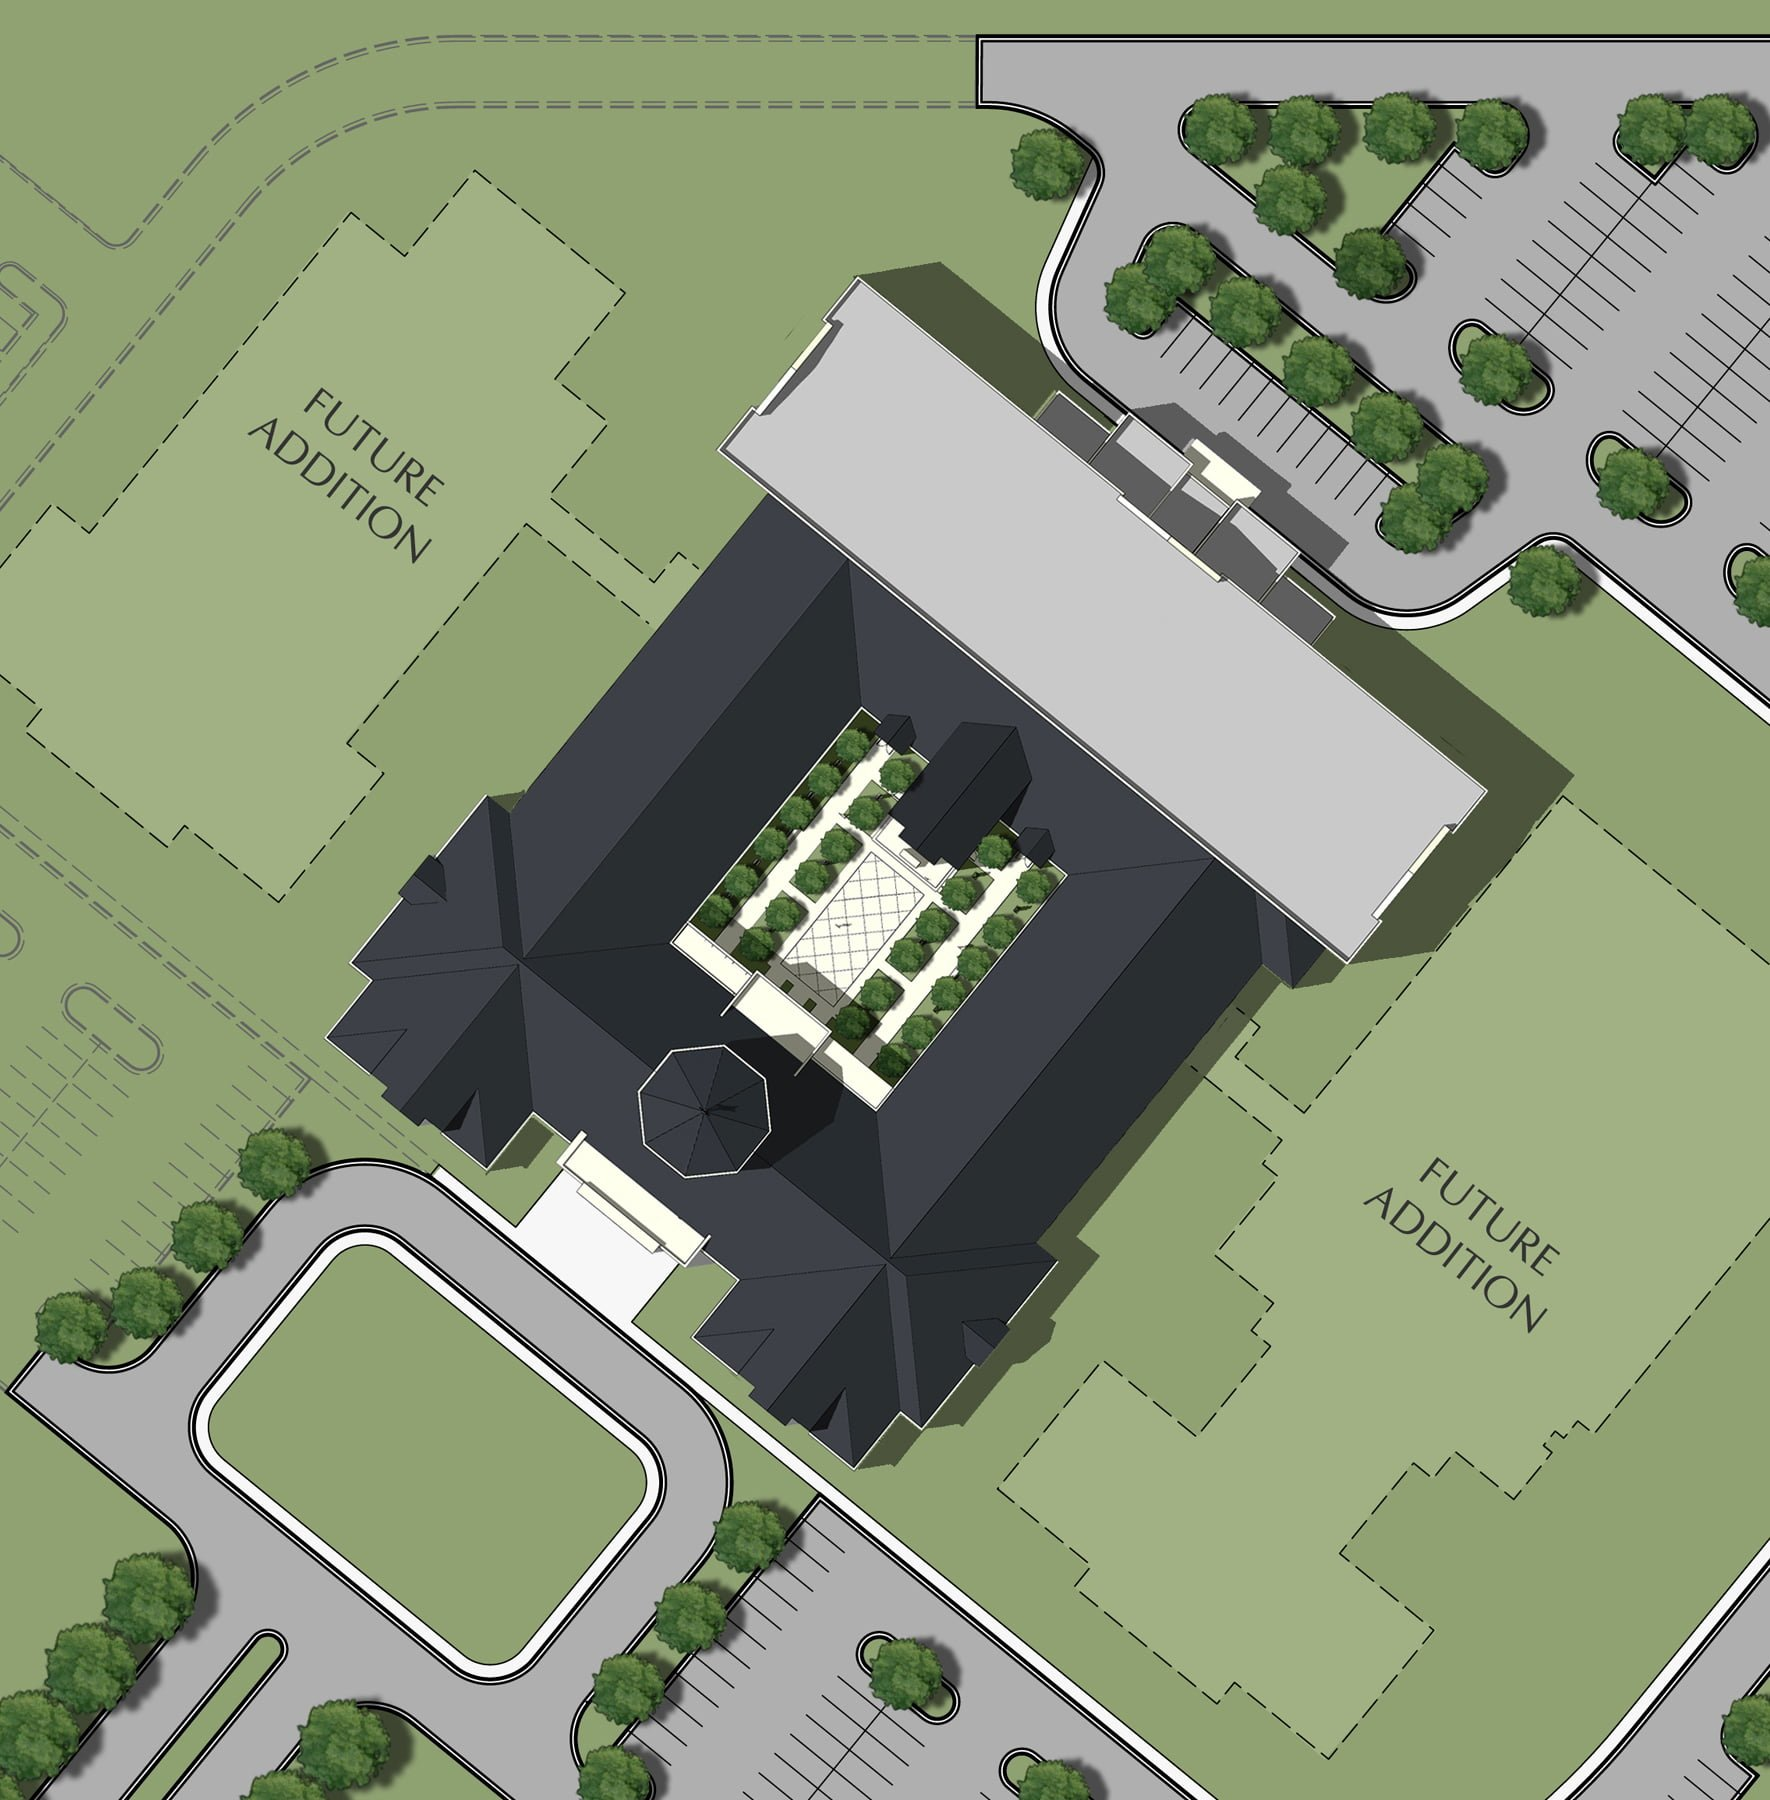 catholic high school color site plan (1770x1800)